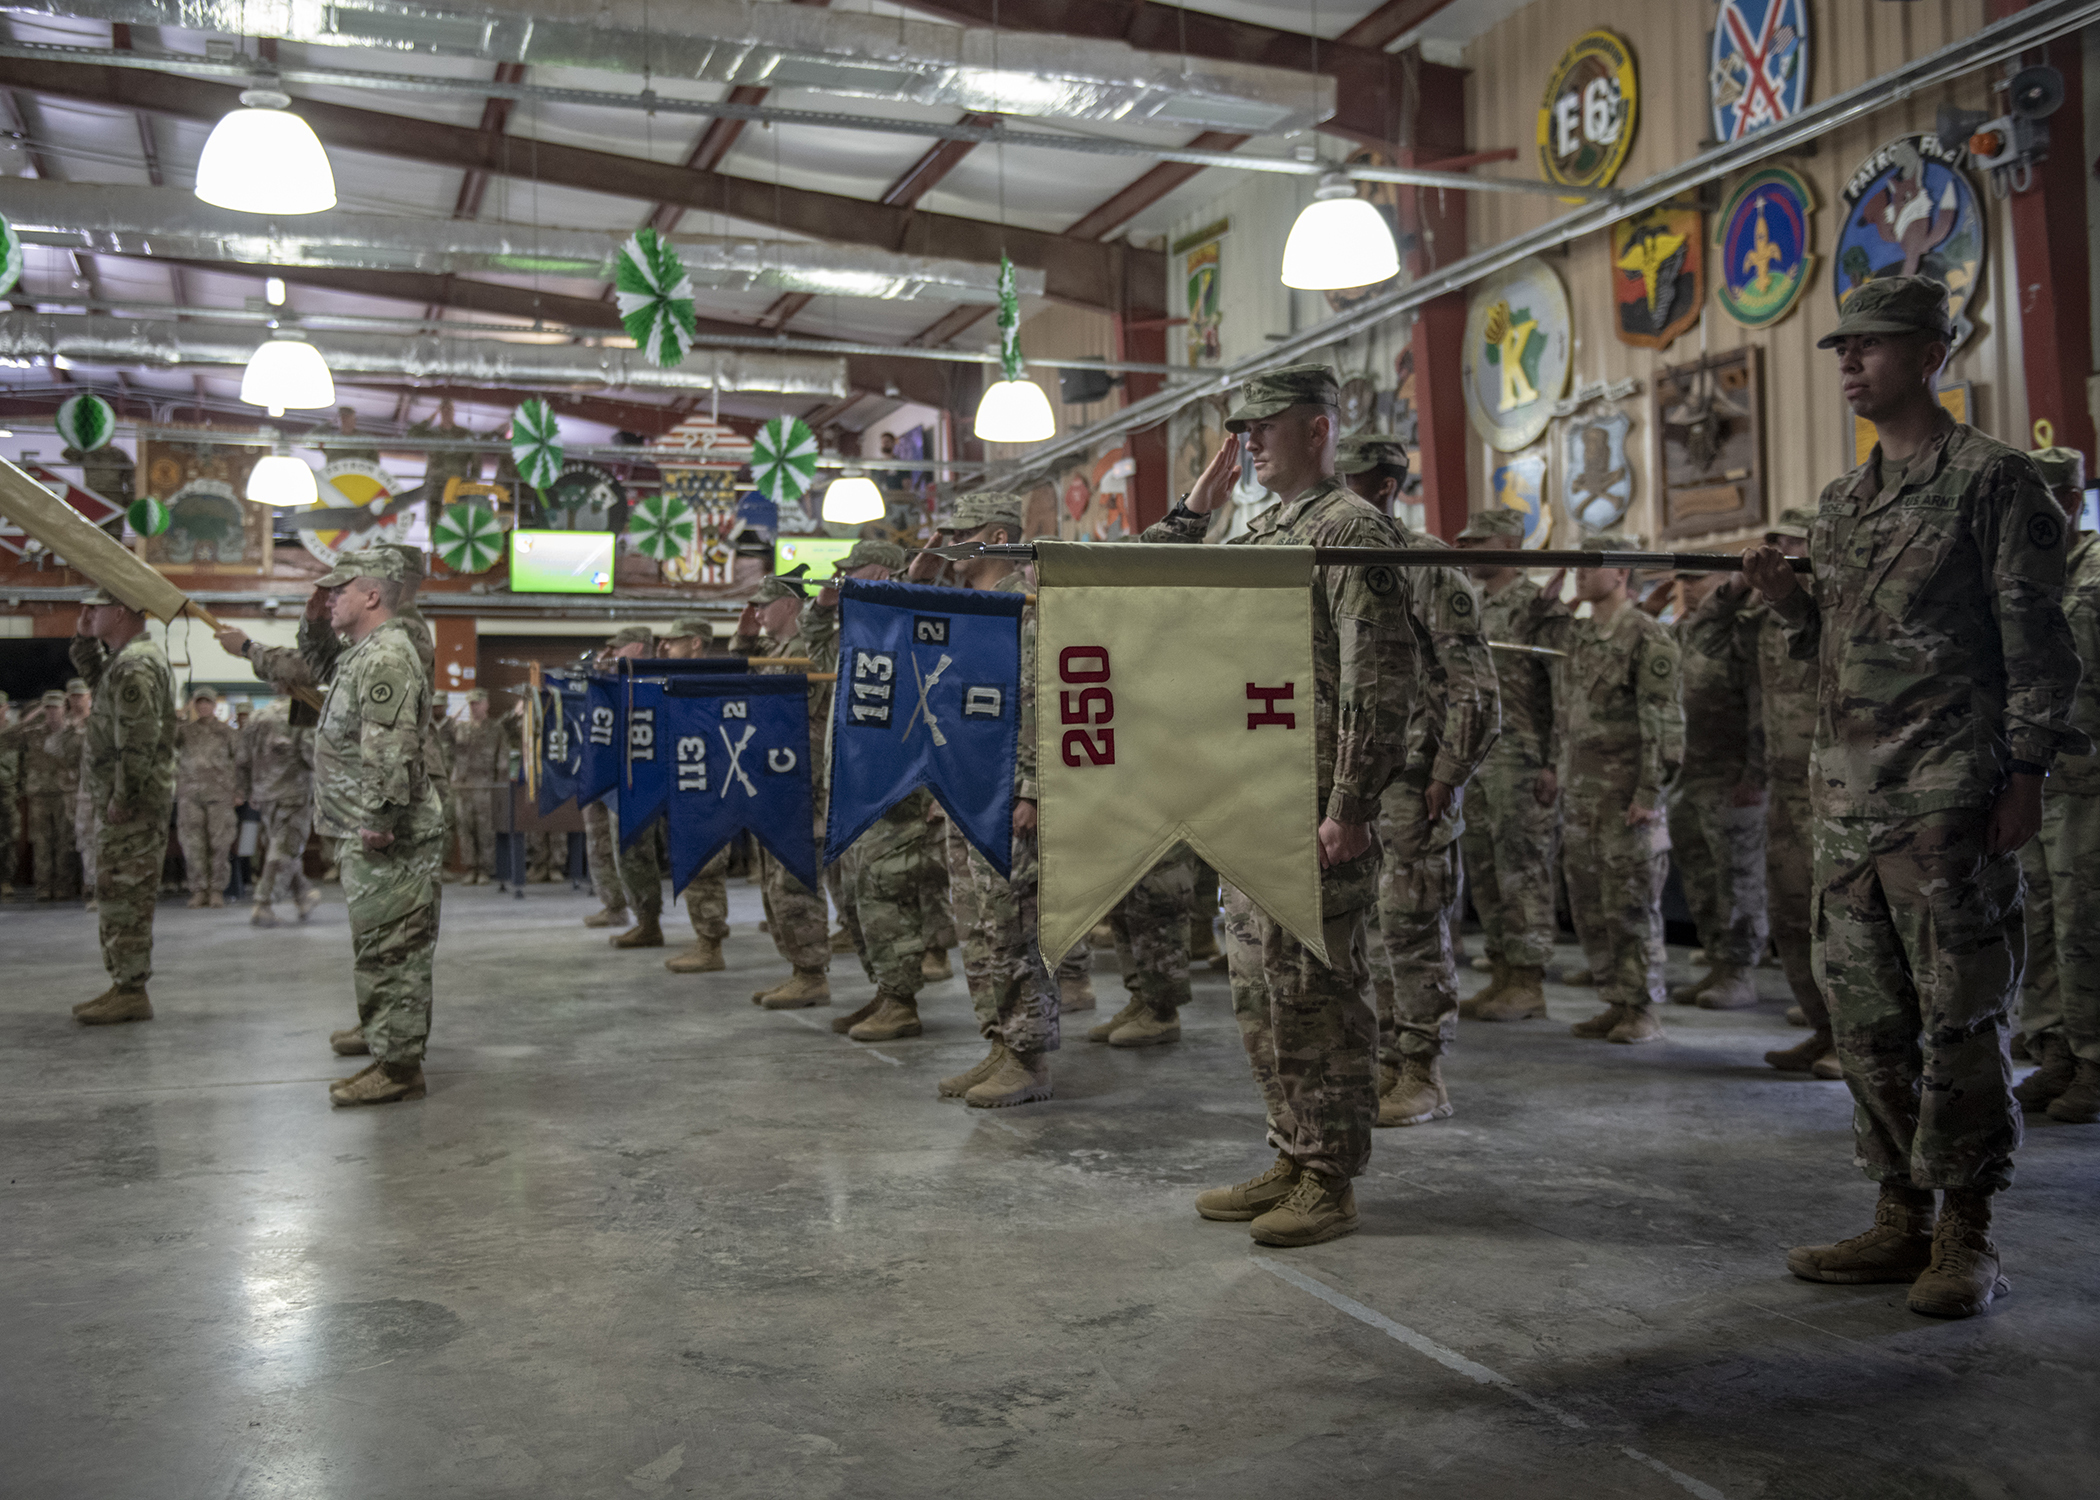 U.S. Army Soldiers from 2nd Battalion, 113th Infantry Regiment, Task Force Warrior, New Jersey National Guard, stand at attention during a transfer of authority ceremony at Camp Lemonnier, Djibouti, March 15, 2019. Task Force Warrior assumed responsibility as the security forces battalion for Combined Joint Task Force-Horn of Africa and will also contribute to international efforts to enhance security and stability in East Africa. (U.S. Air Force Photo by Tech. Sgt. Shawn Nickel)